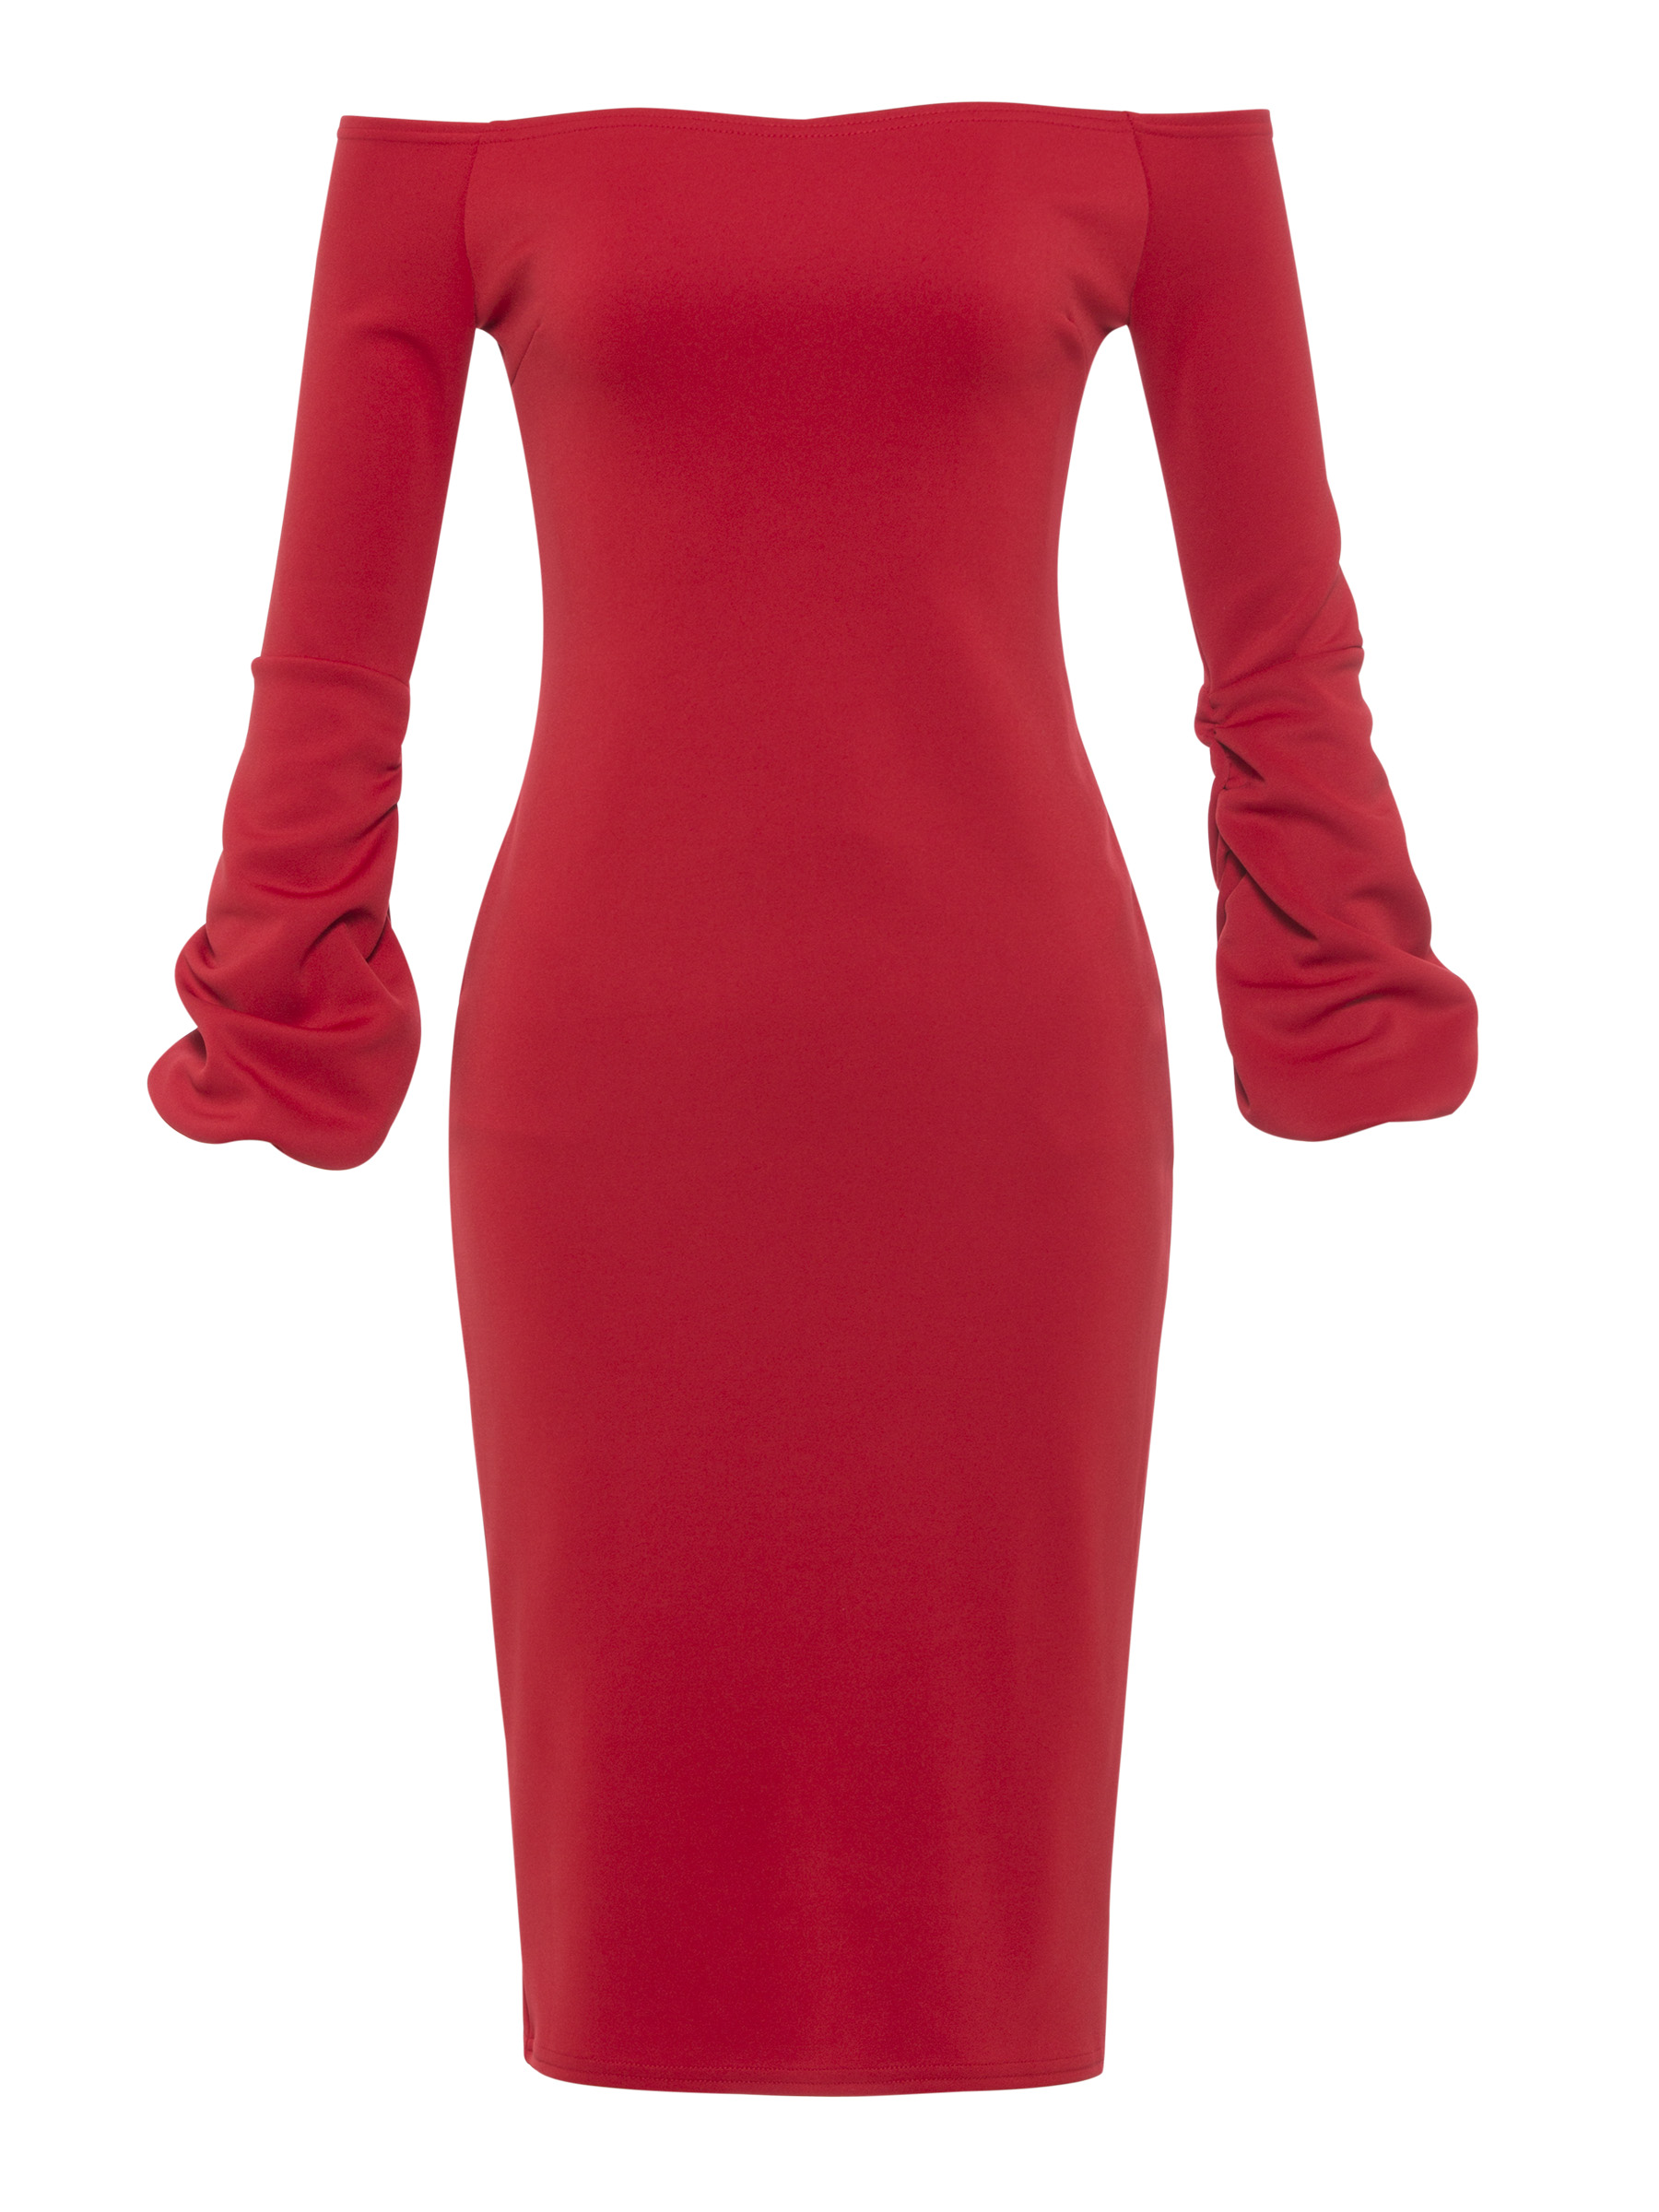 Red Cocktail Dress Off The Shoulder Long Sleeves Sheath Knee Length Women Night Club Evening Party Gowns Cocktail Dresses